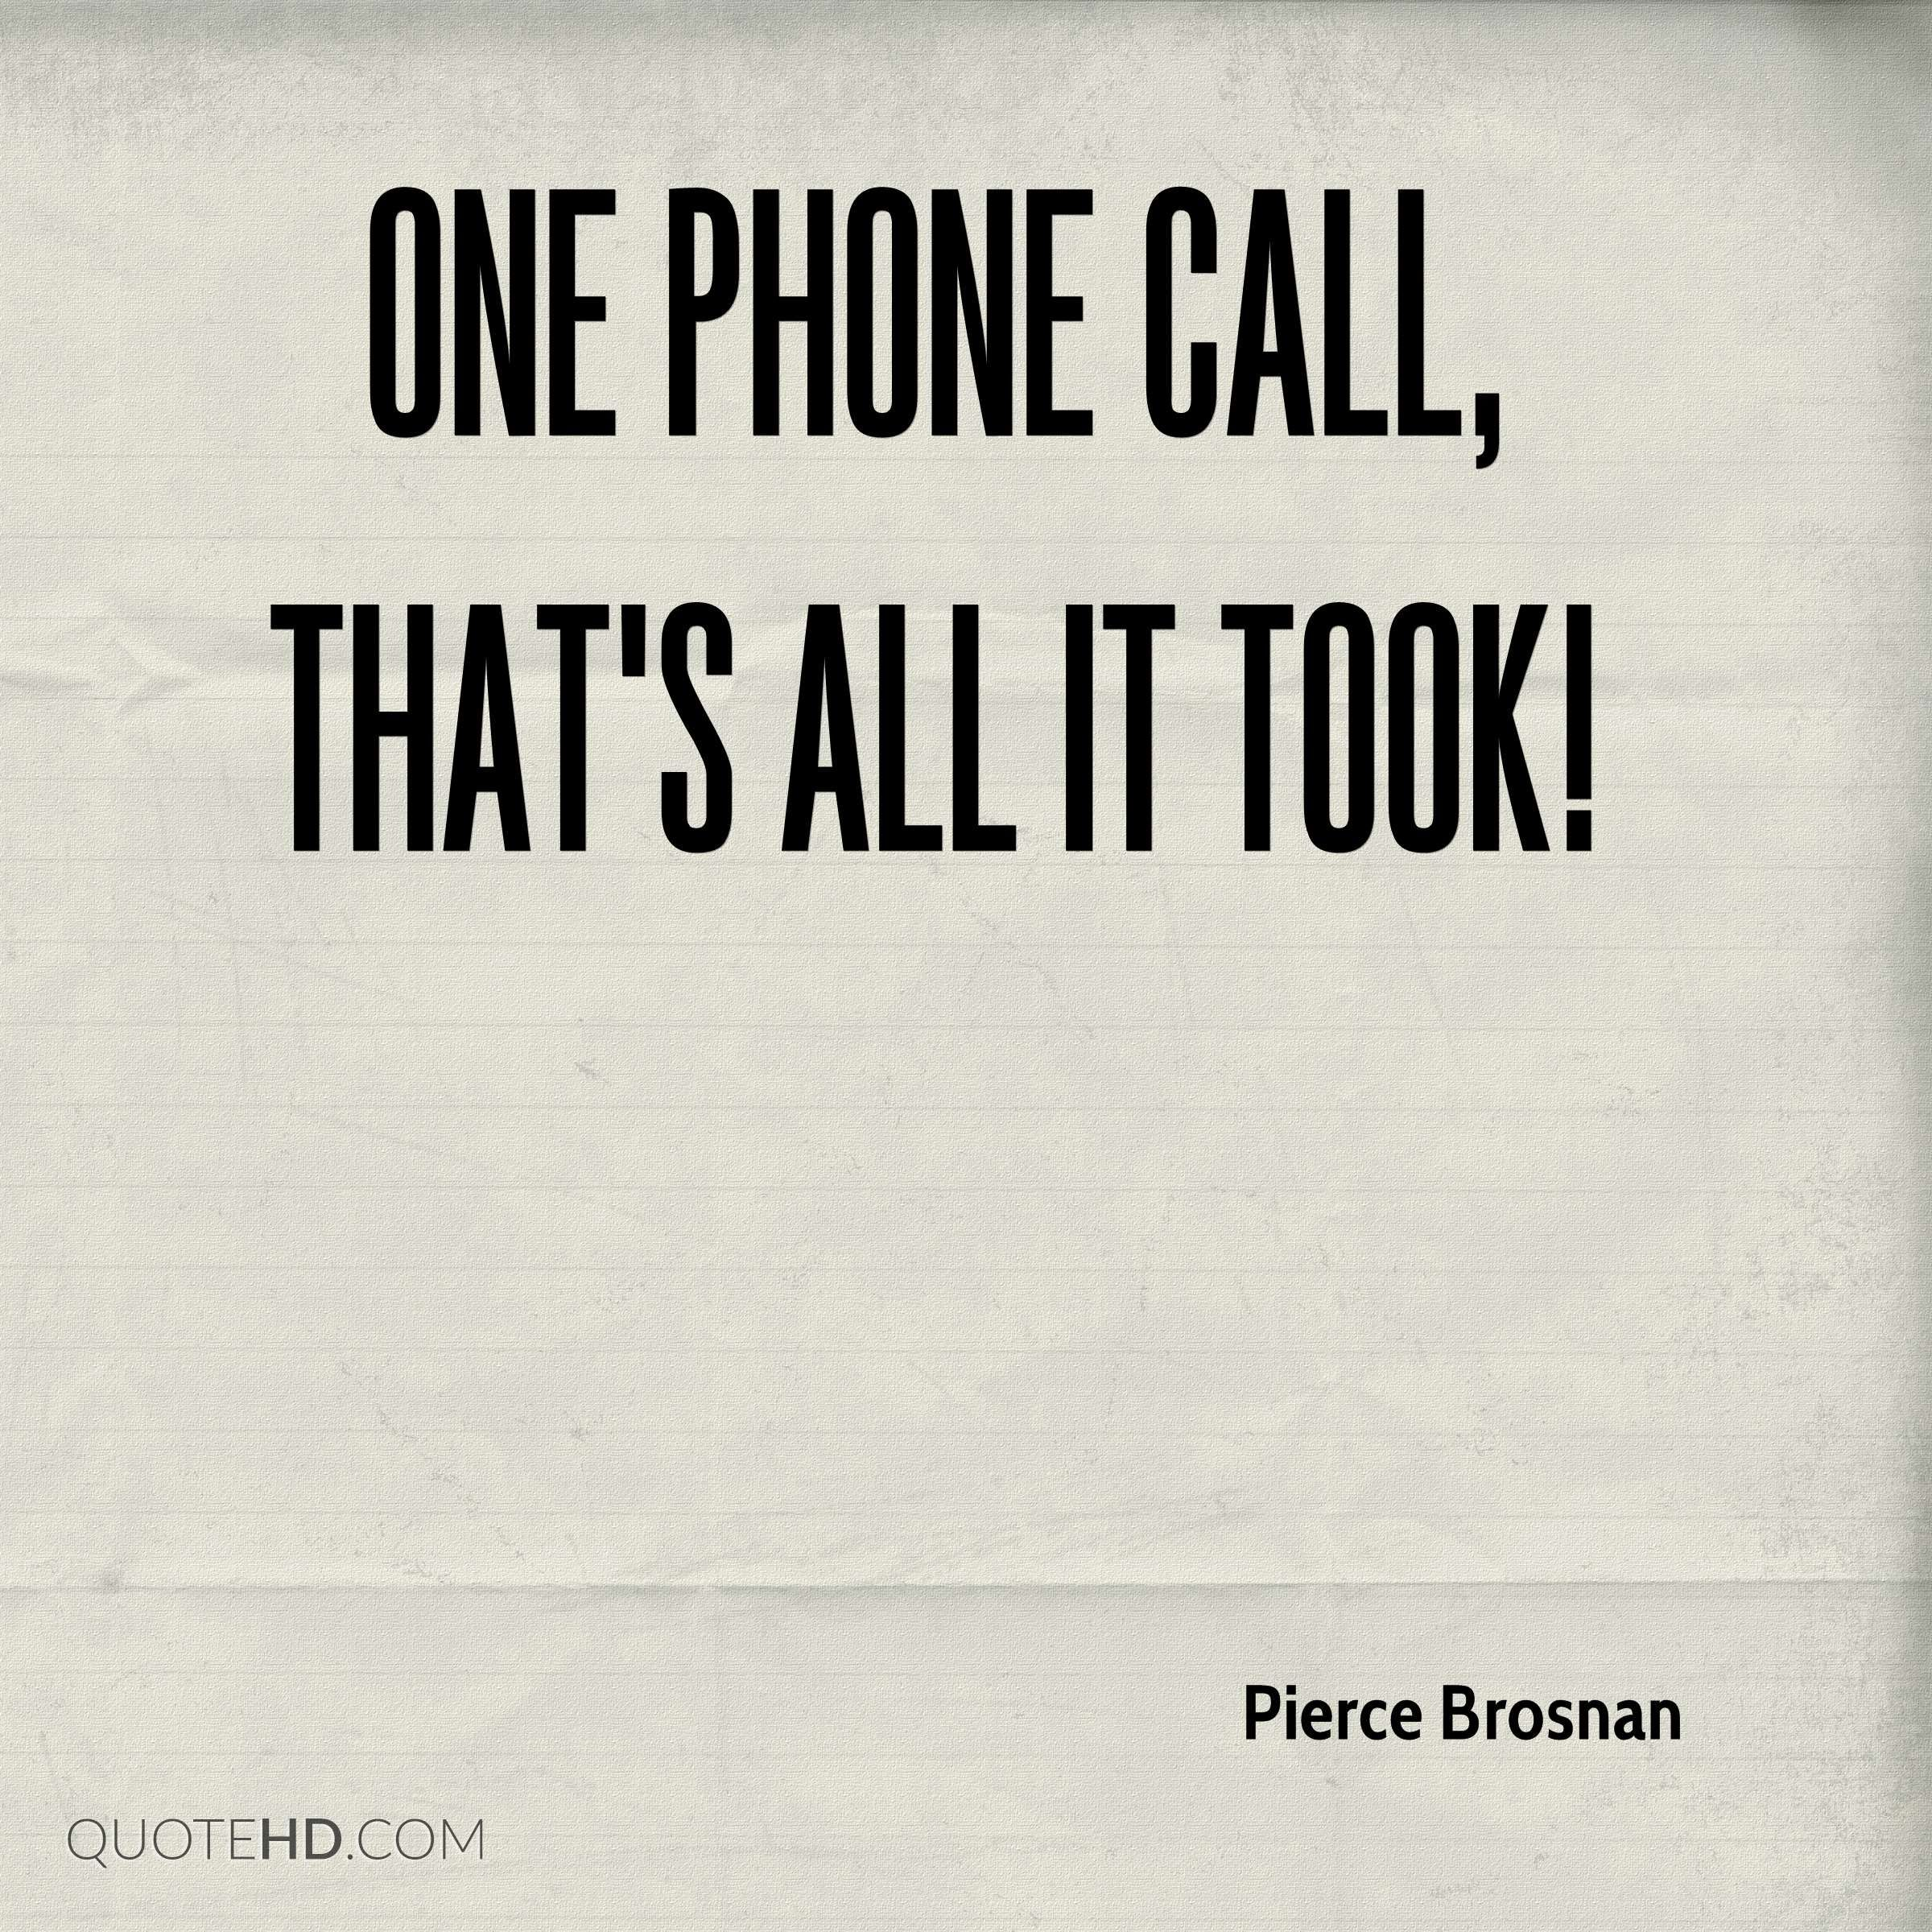 Phone Call Quotes Piercebrosnanquoteonephonecallthatsallittook 2400×240